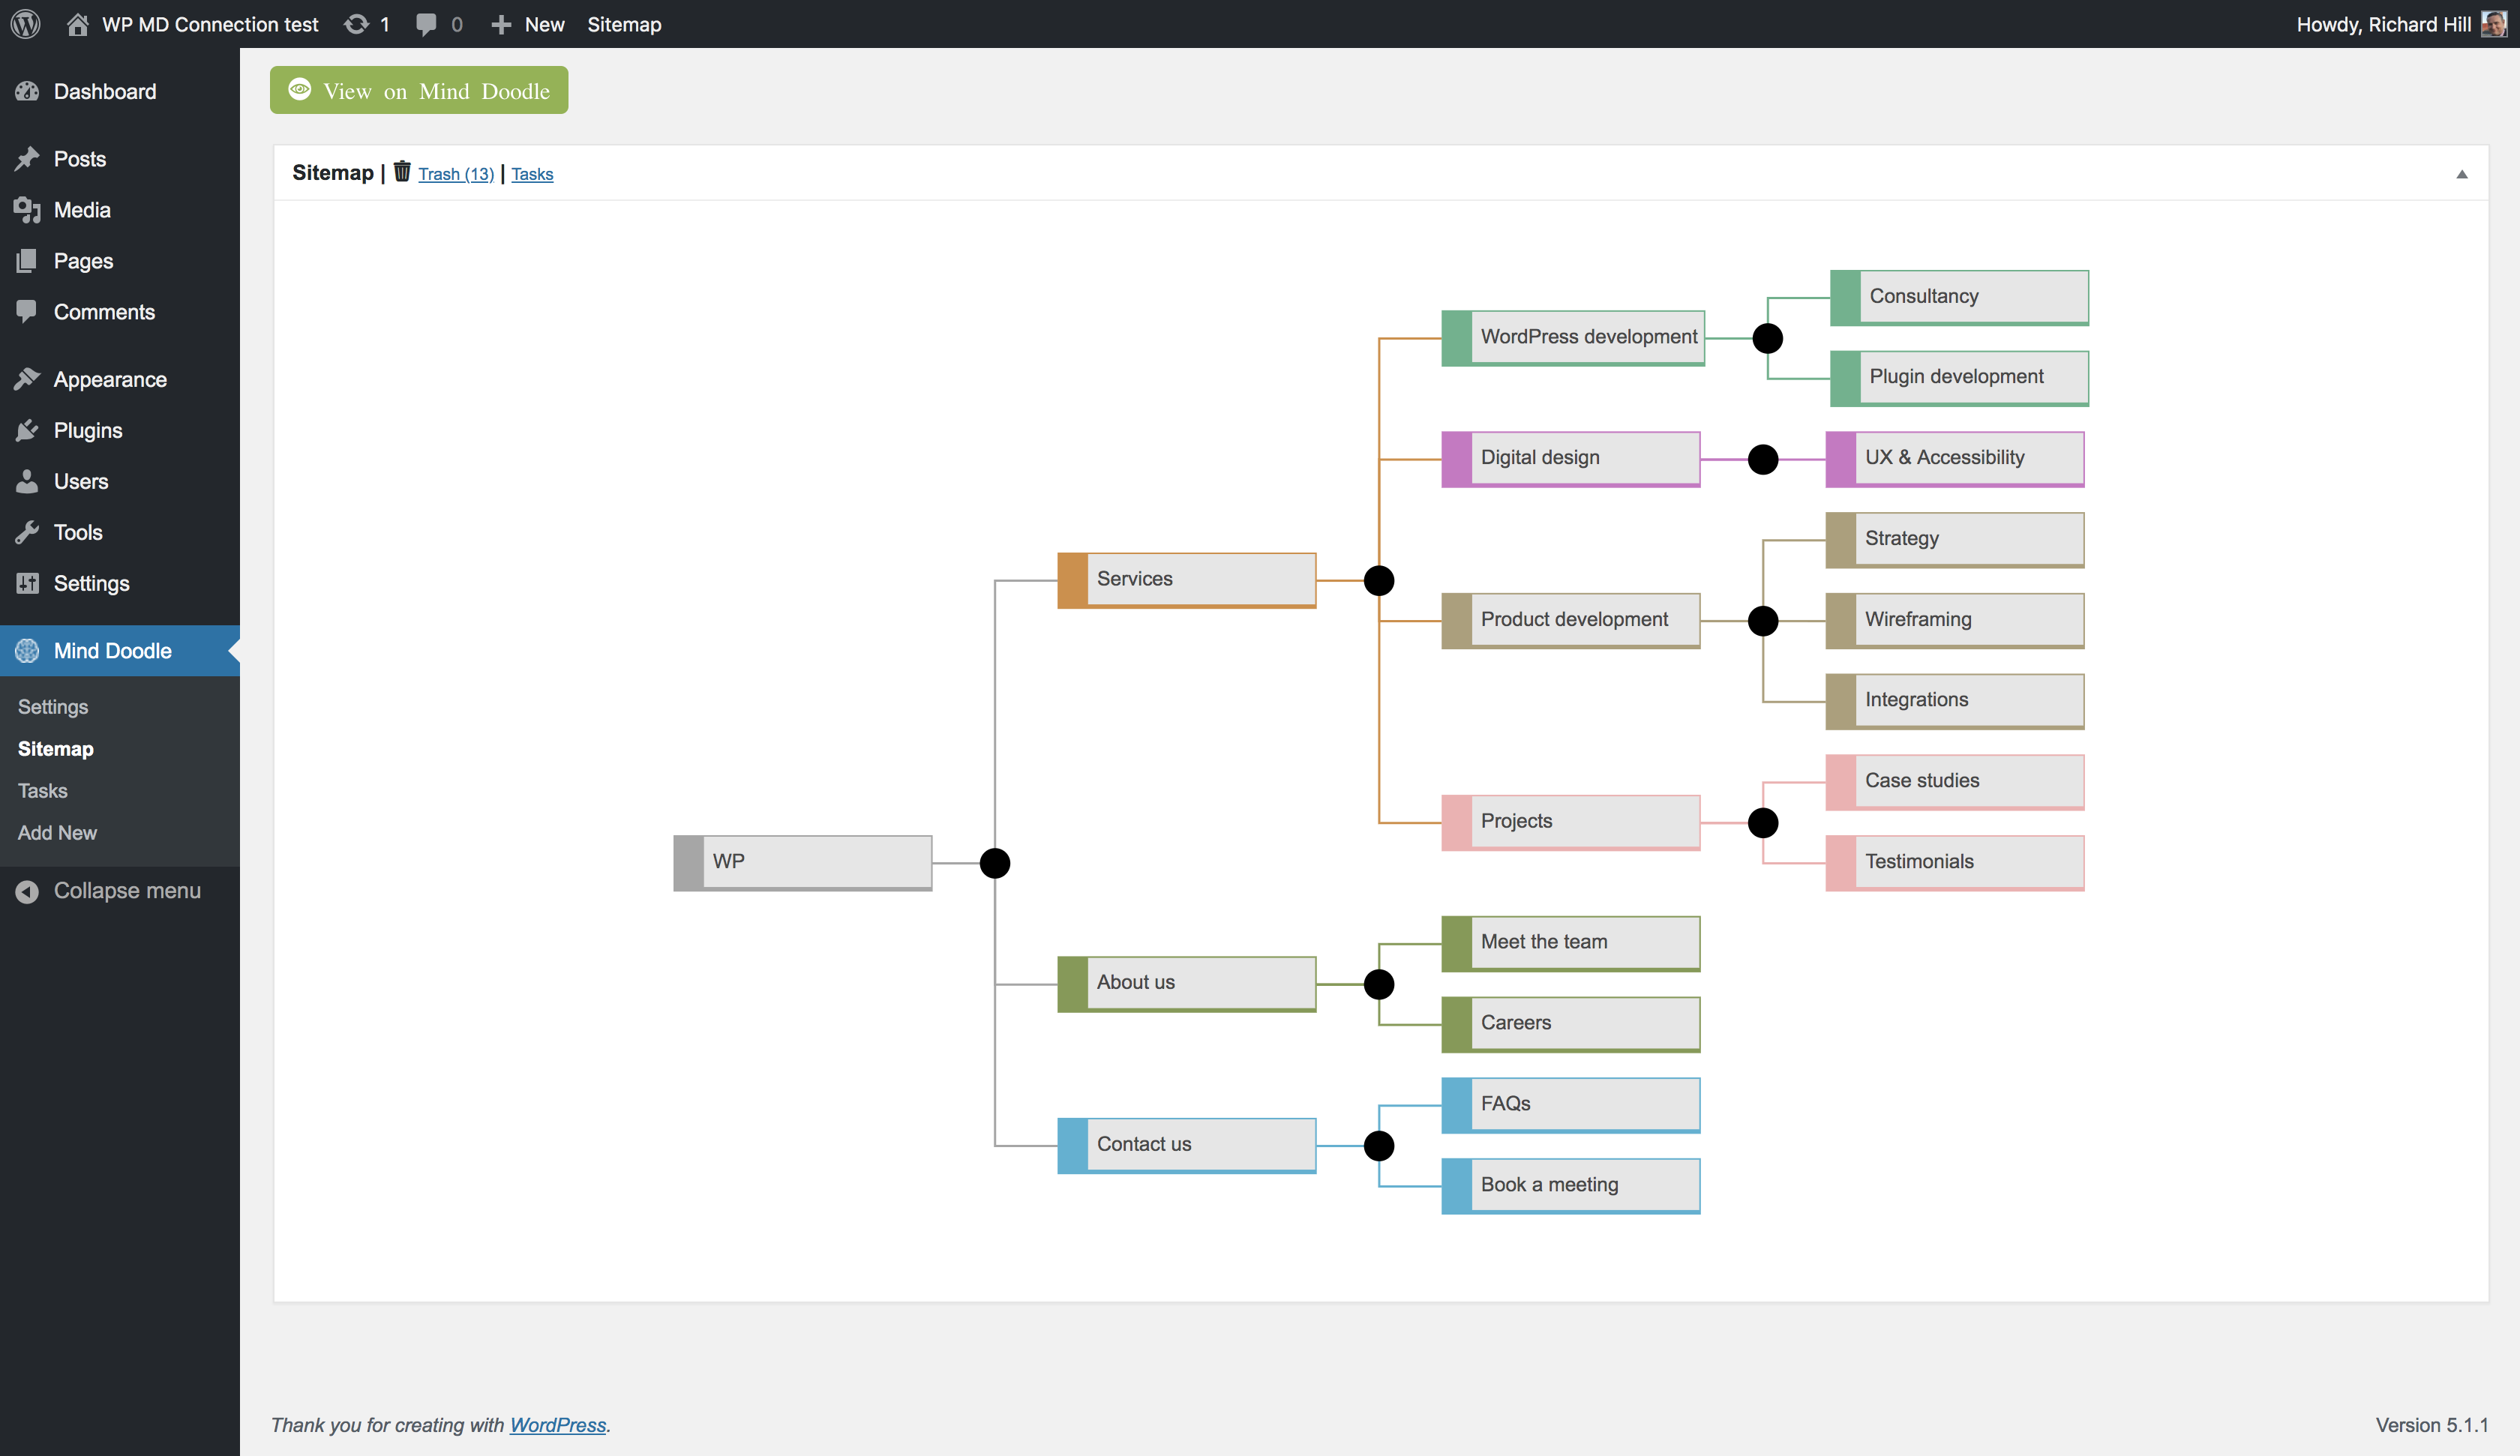 This screen shot provides a graphical representation of the Mind Doodle visual sitemap tool.